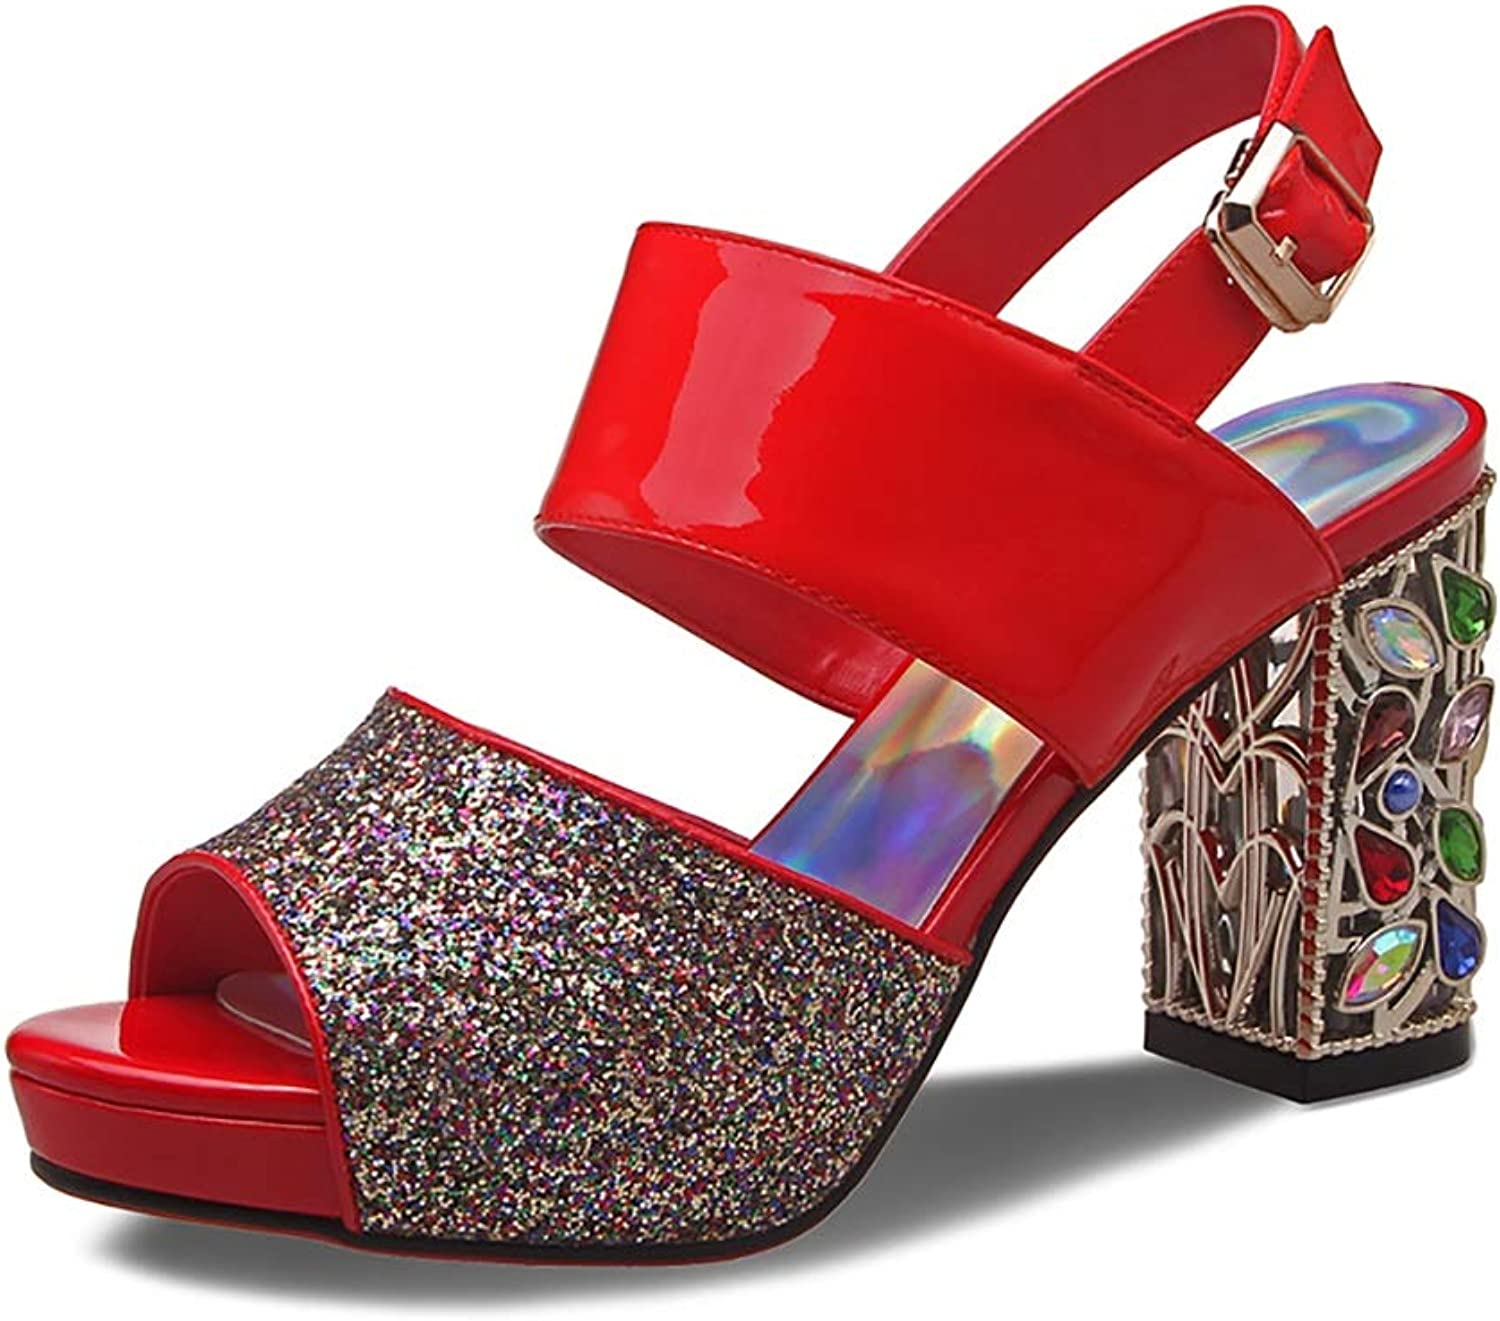 High-Heeled Sandals Rhinestone Sequins Coarse Heel Patent Leather shoes, Red and White 8.5cm (color   Red, Size   37)